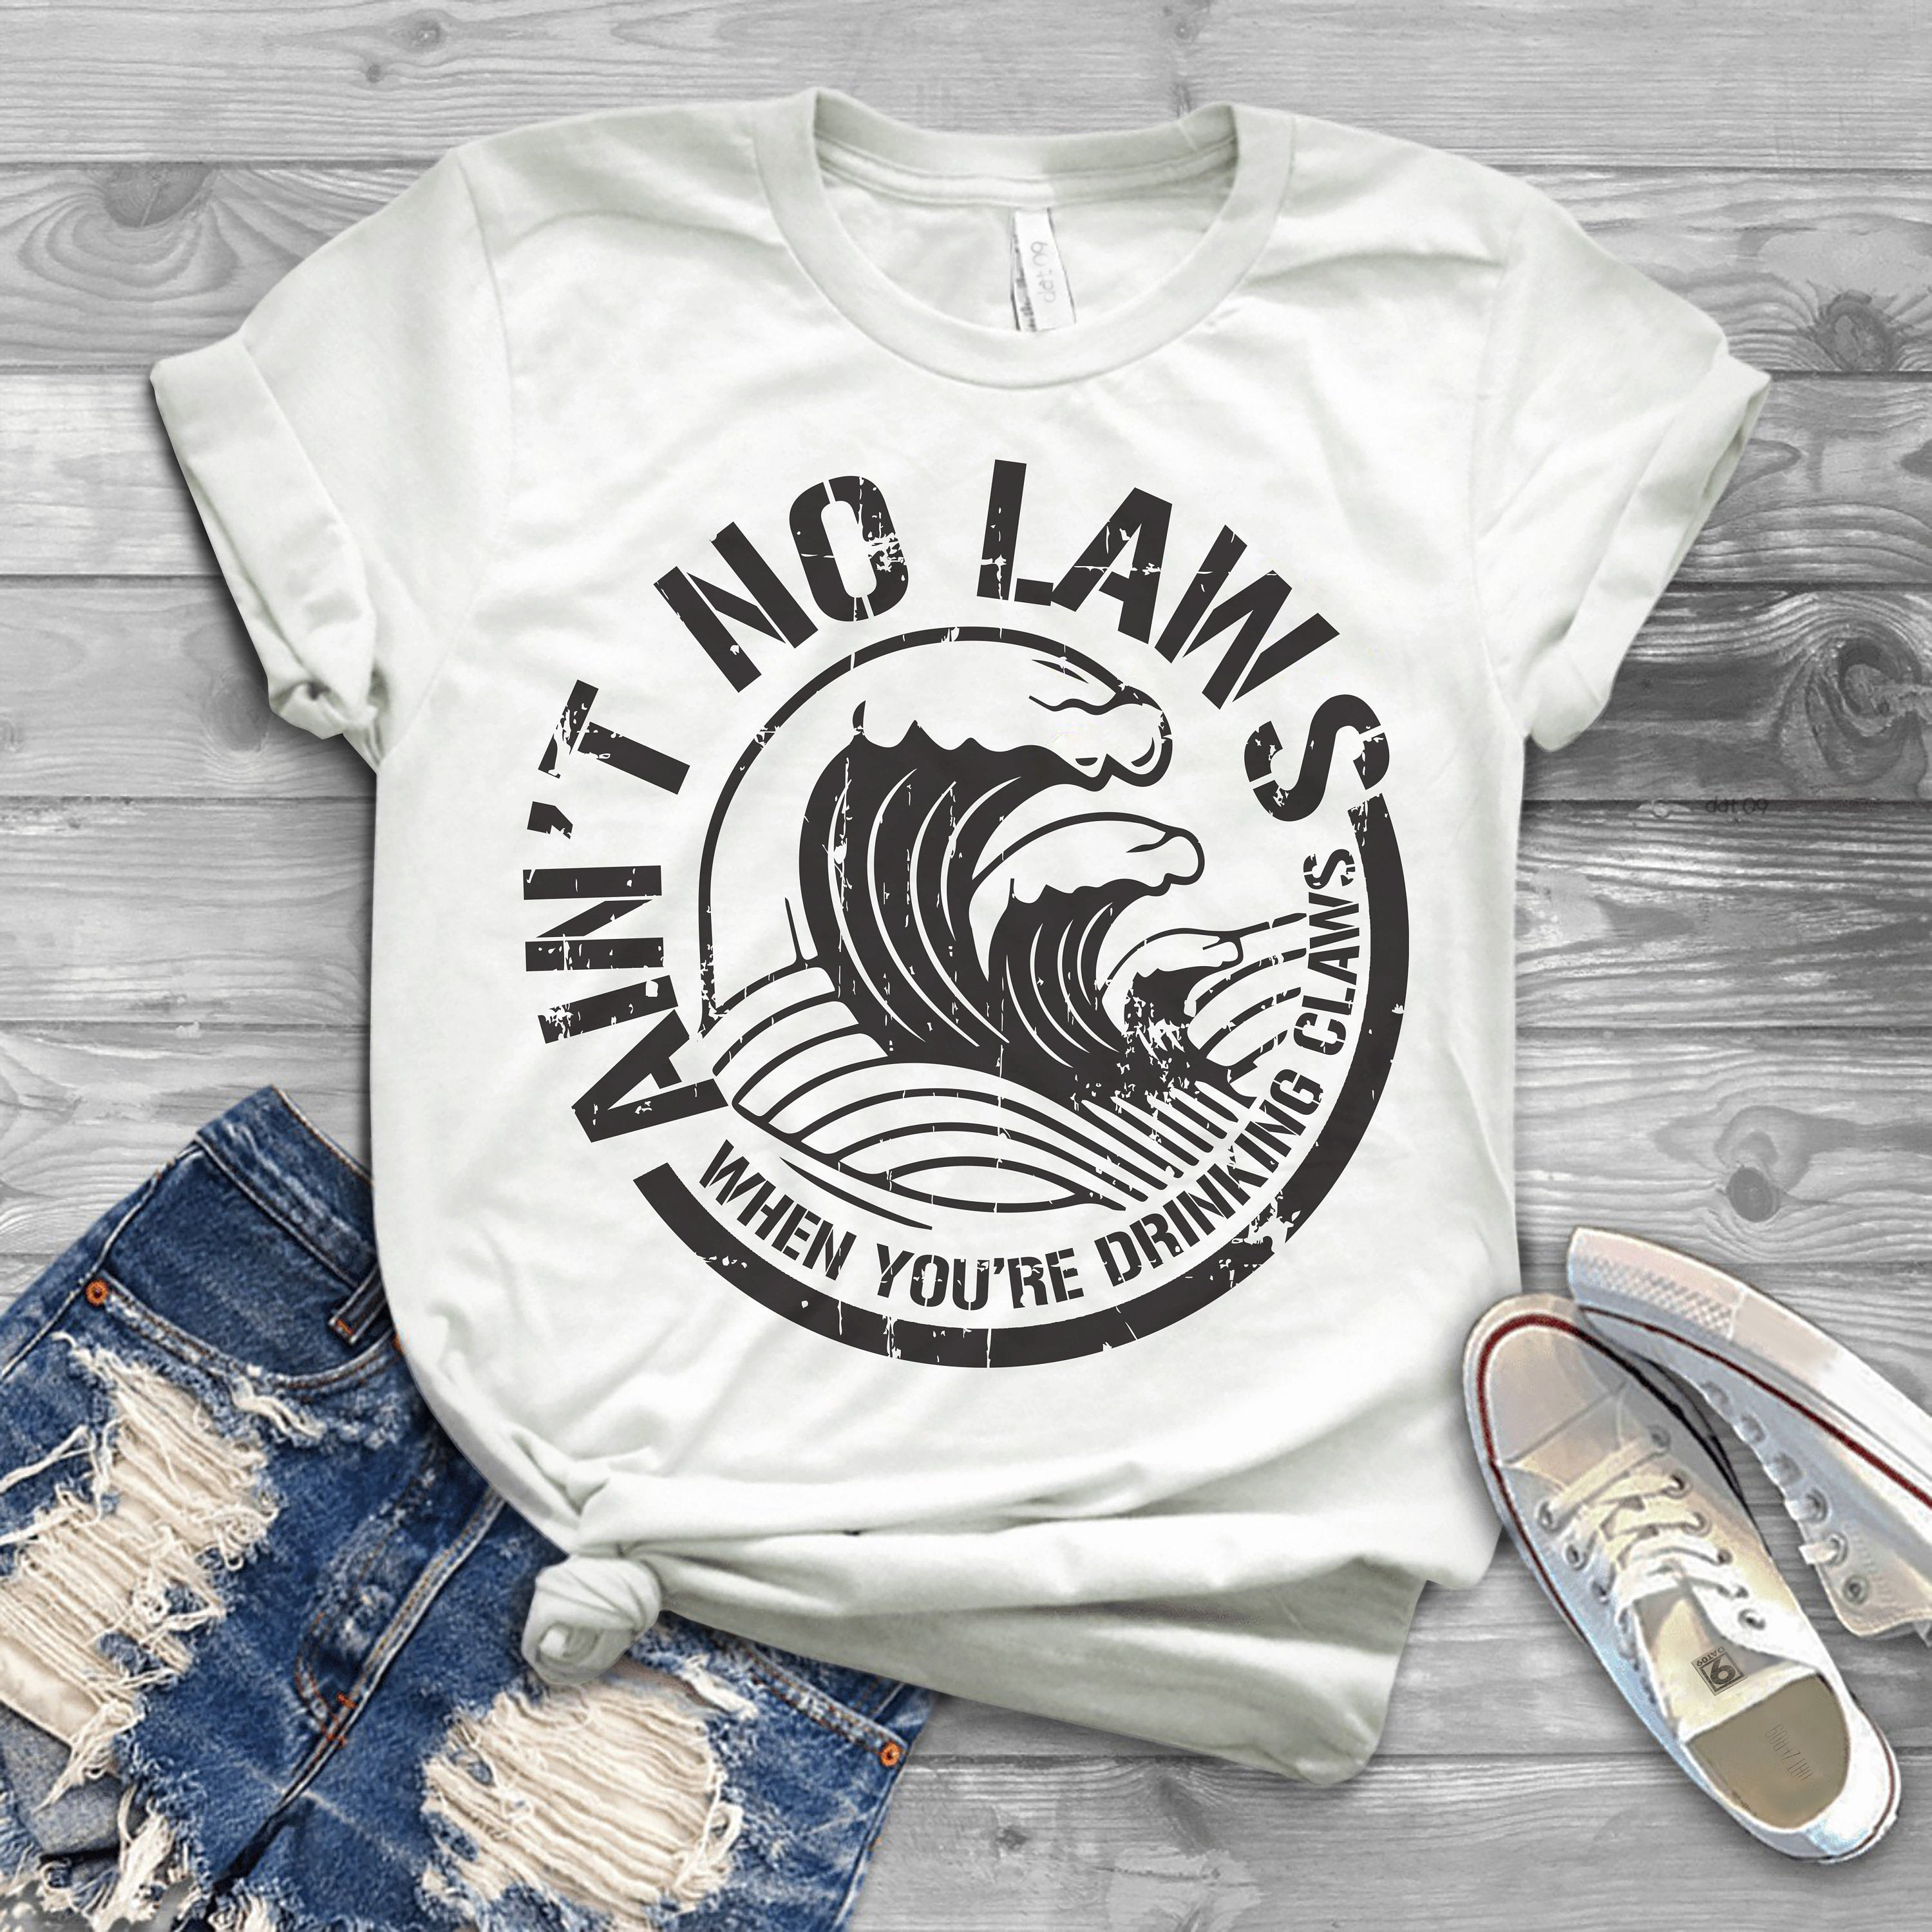 Aint No Laws When Your Drinking Claws Vintage   Shirt   - White Claw Gifts - Drinking   Shirt   - White Claw   T  -  shirt   - Aint No Laws Tee